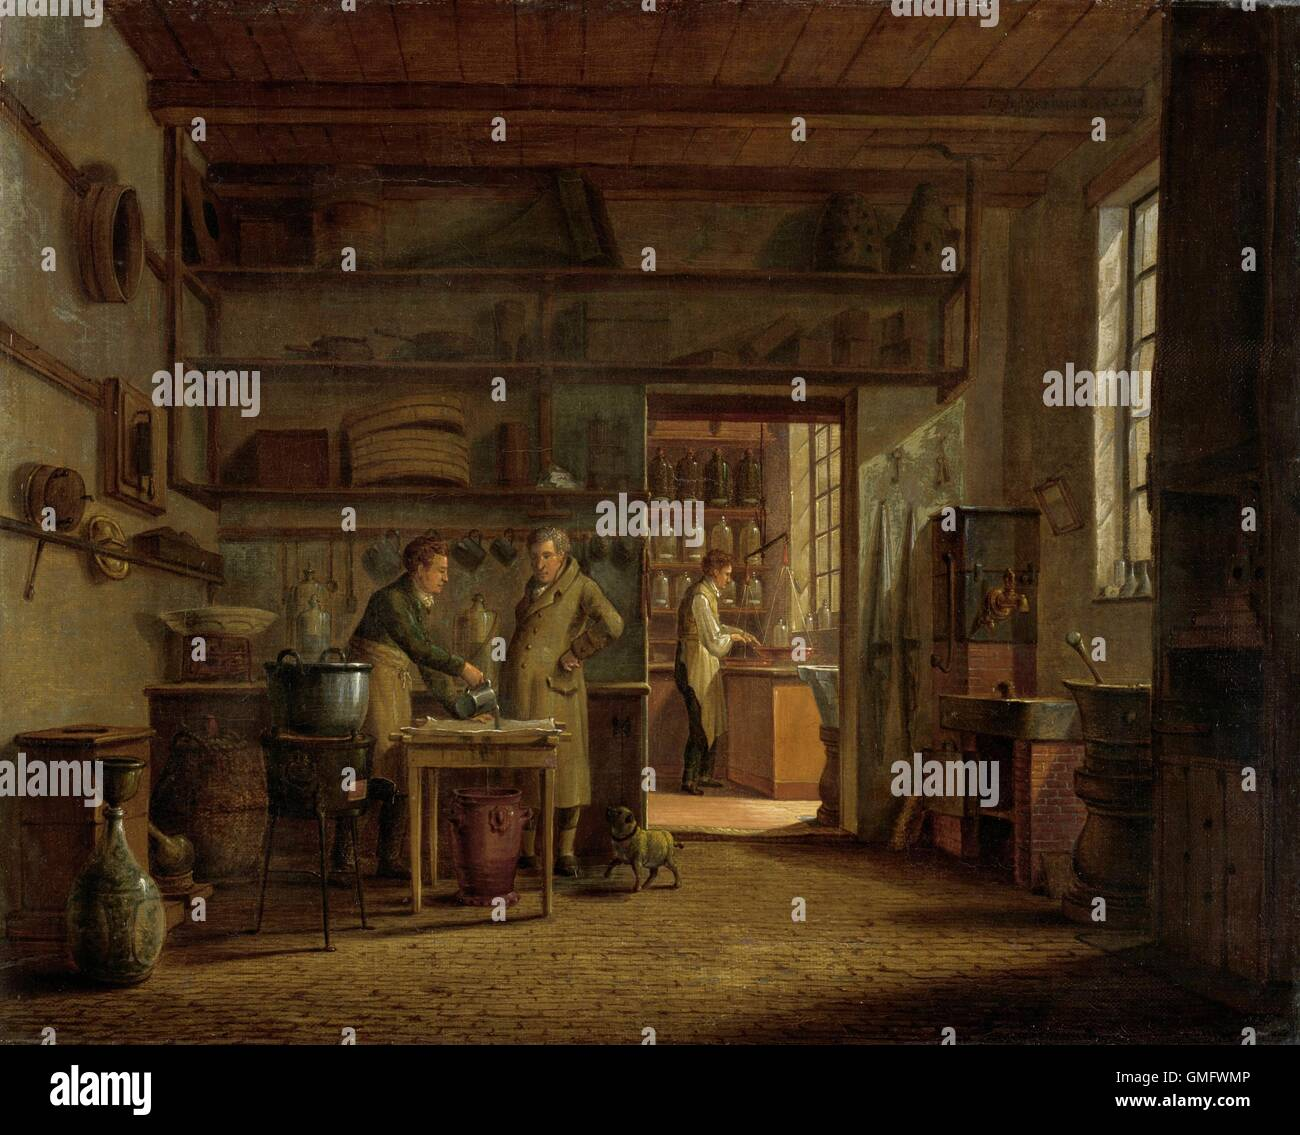 Interior of the Laboratory of the Apothecary, by Johannes Jelgerhuis, 1818, Dutch painting, oil on canvas. An man Stock Photo